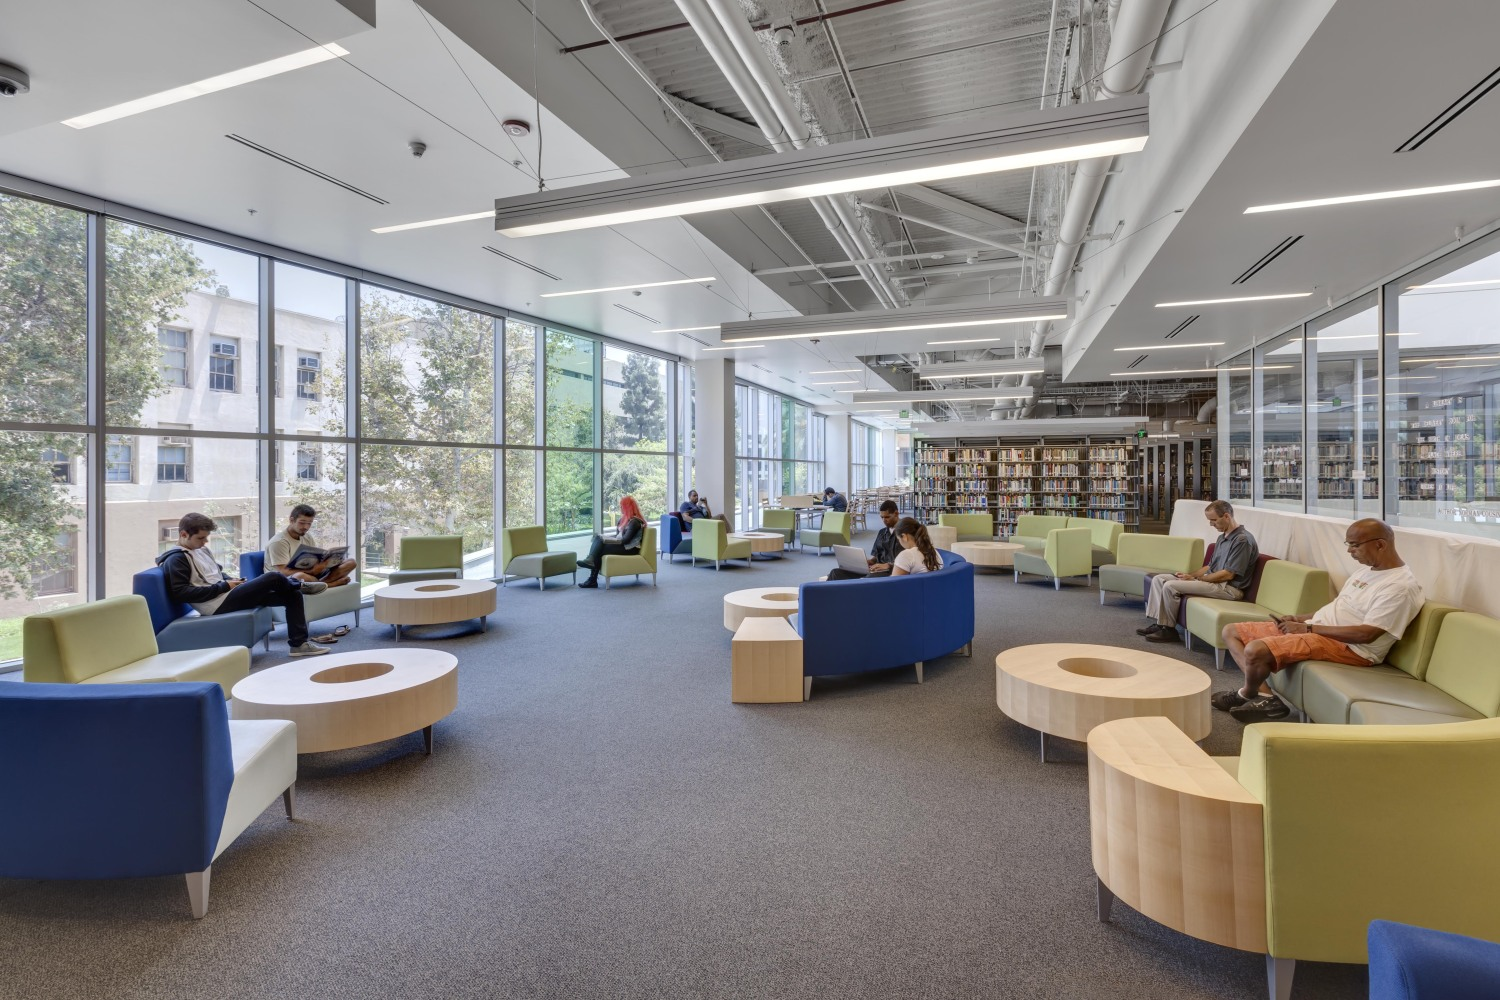 Reading Room Design Los Angeles Trade Technical College Learning Resource